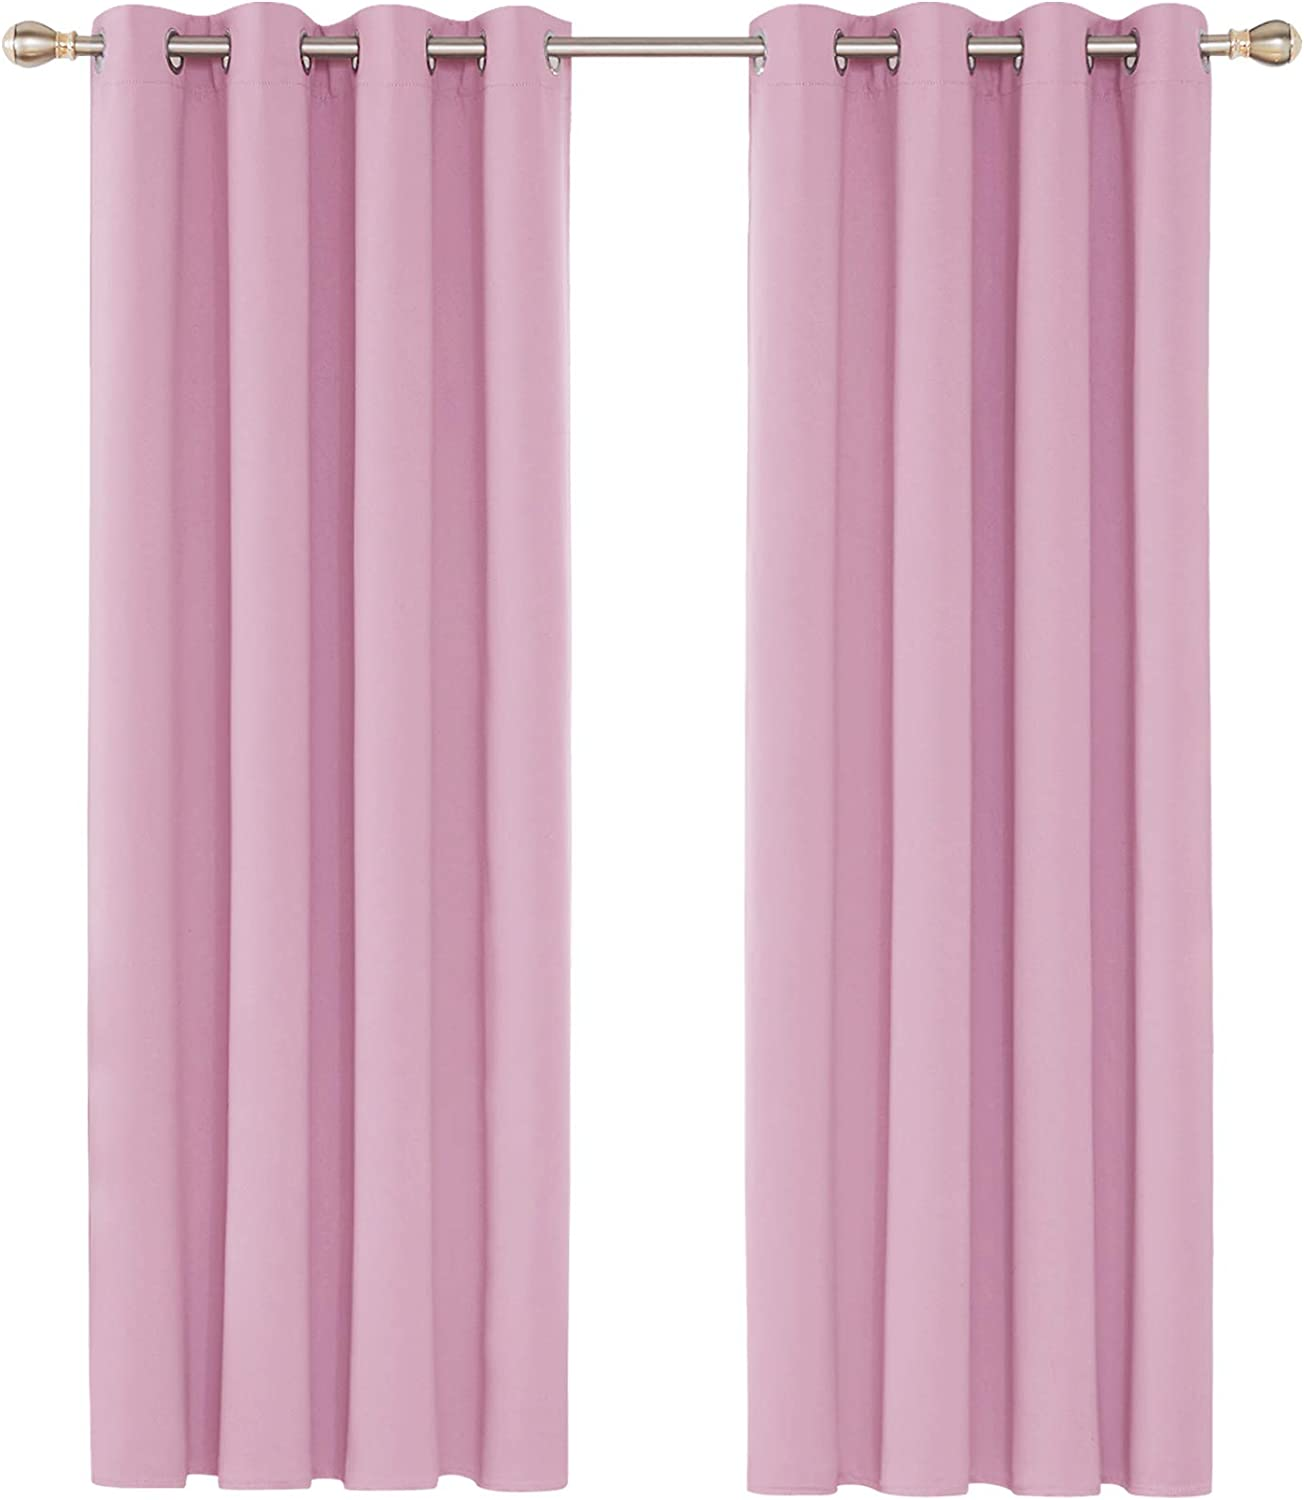 """Deconovo Eyelet Curtains Energy Saving and Room Darkening Curtains Thermal Insulated Blackout Curtains for Nursery 52""""x 72"""" Pink 1 PAIR 2 PANELS x W52""""x L72"""" Pink"""